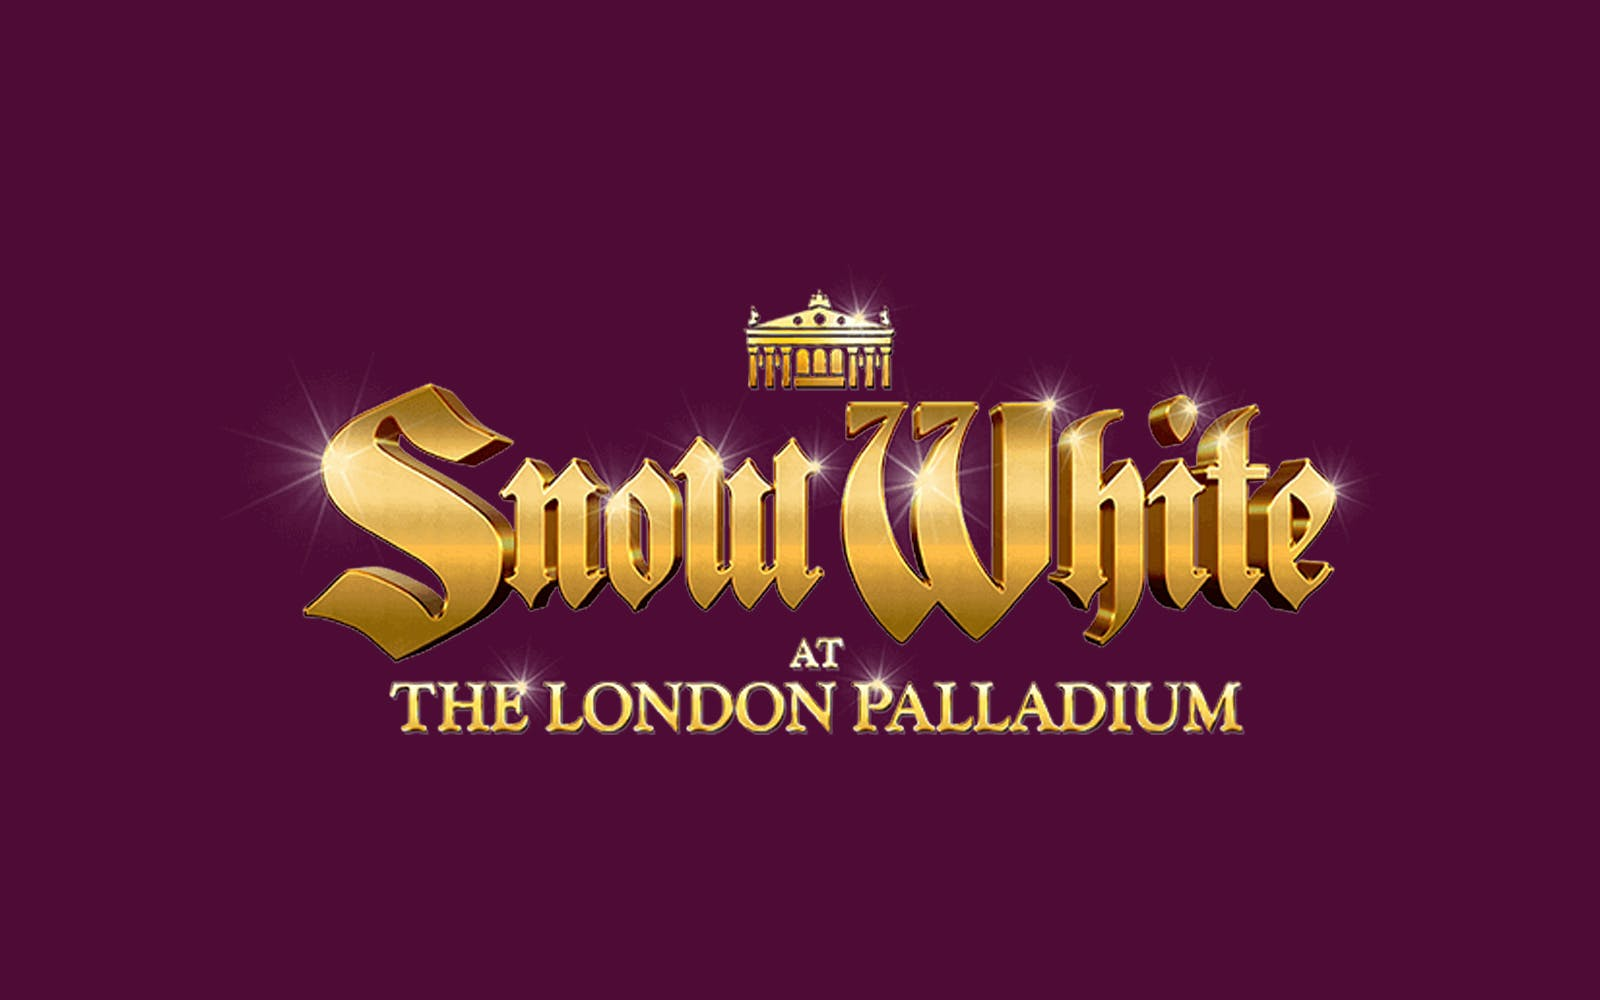 Best west end Shows snow white London